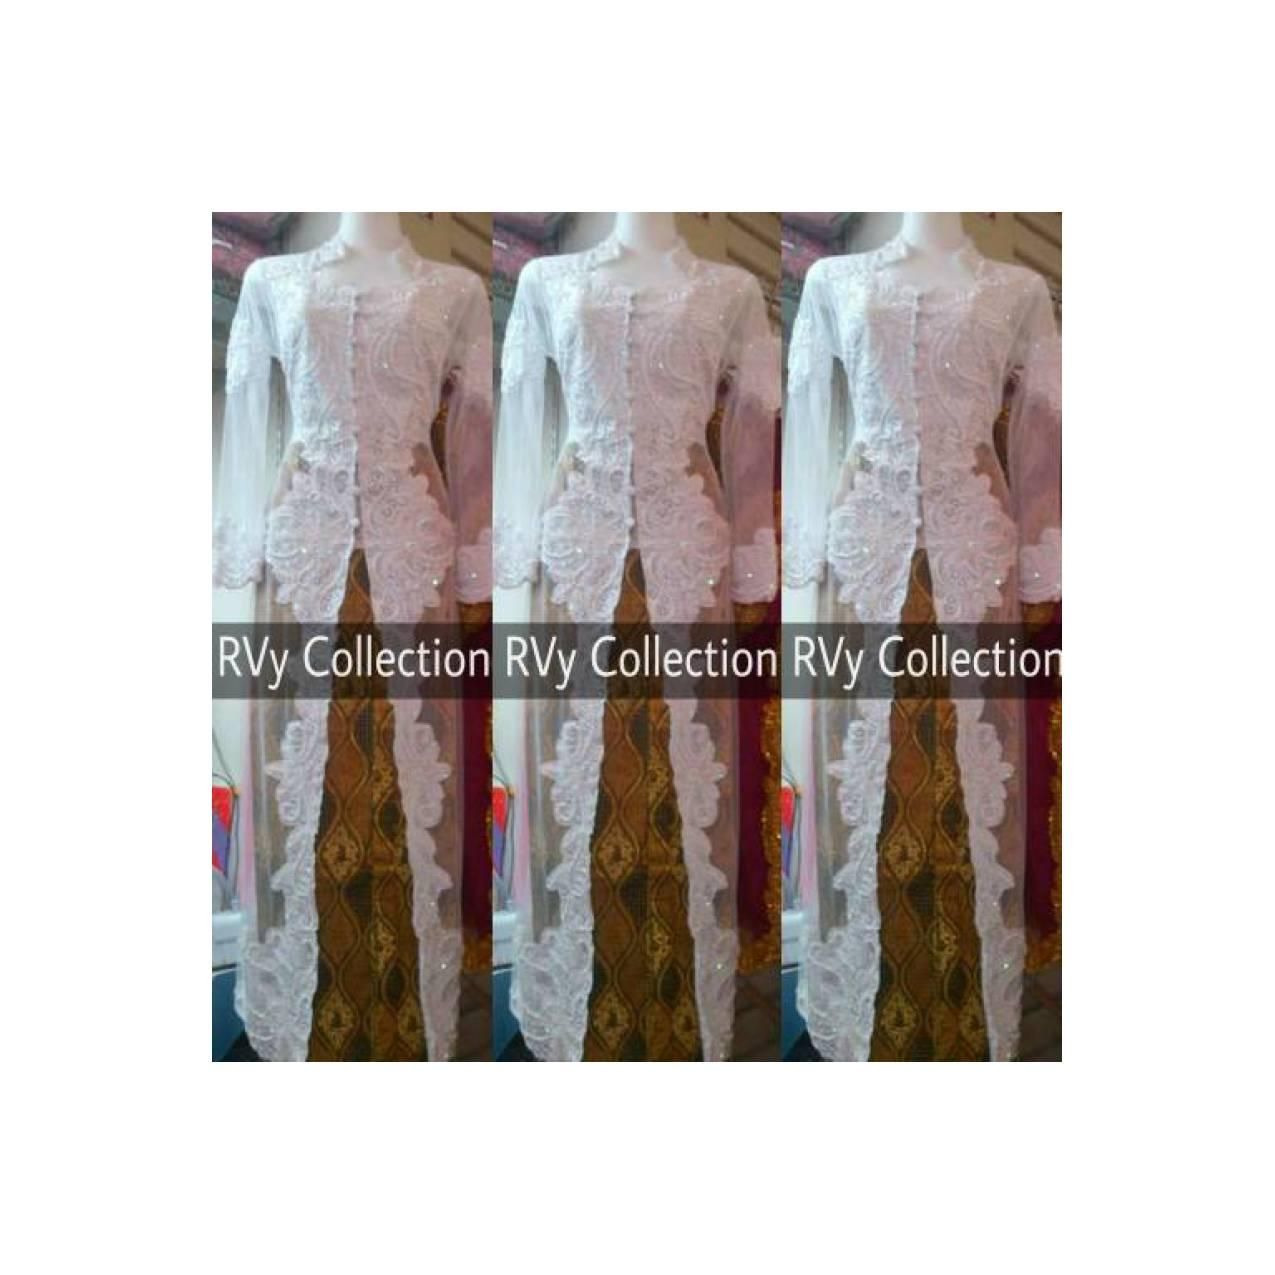 BAJU PESTA Set Kebaya Abaya Akad Nikah Muslim RVy Collection